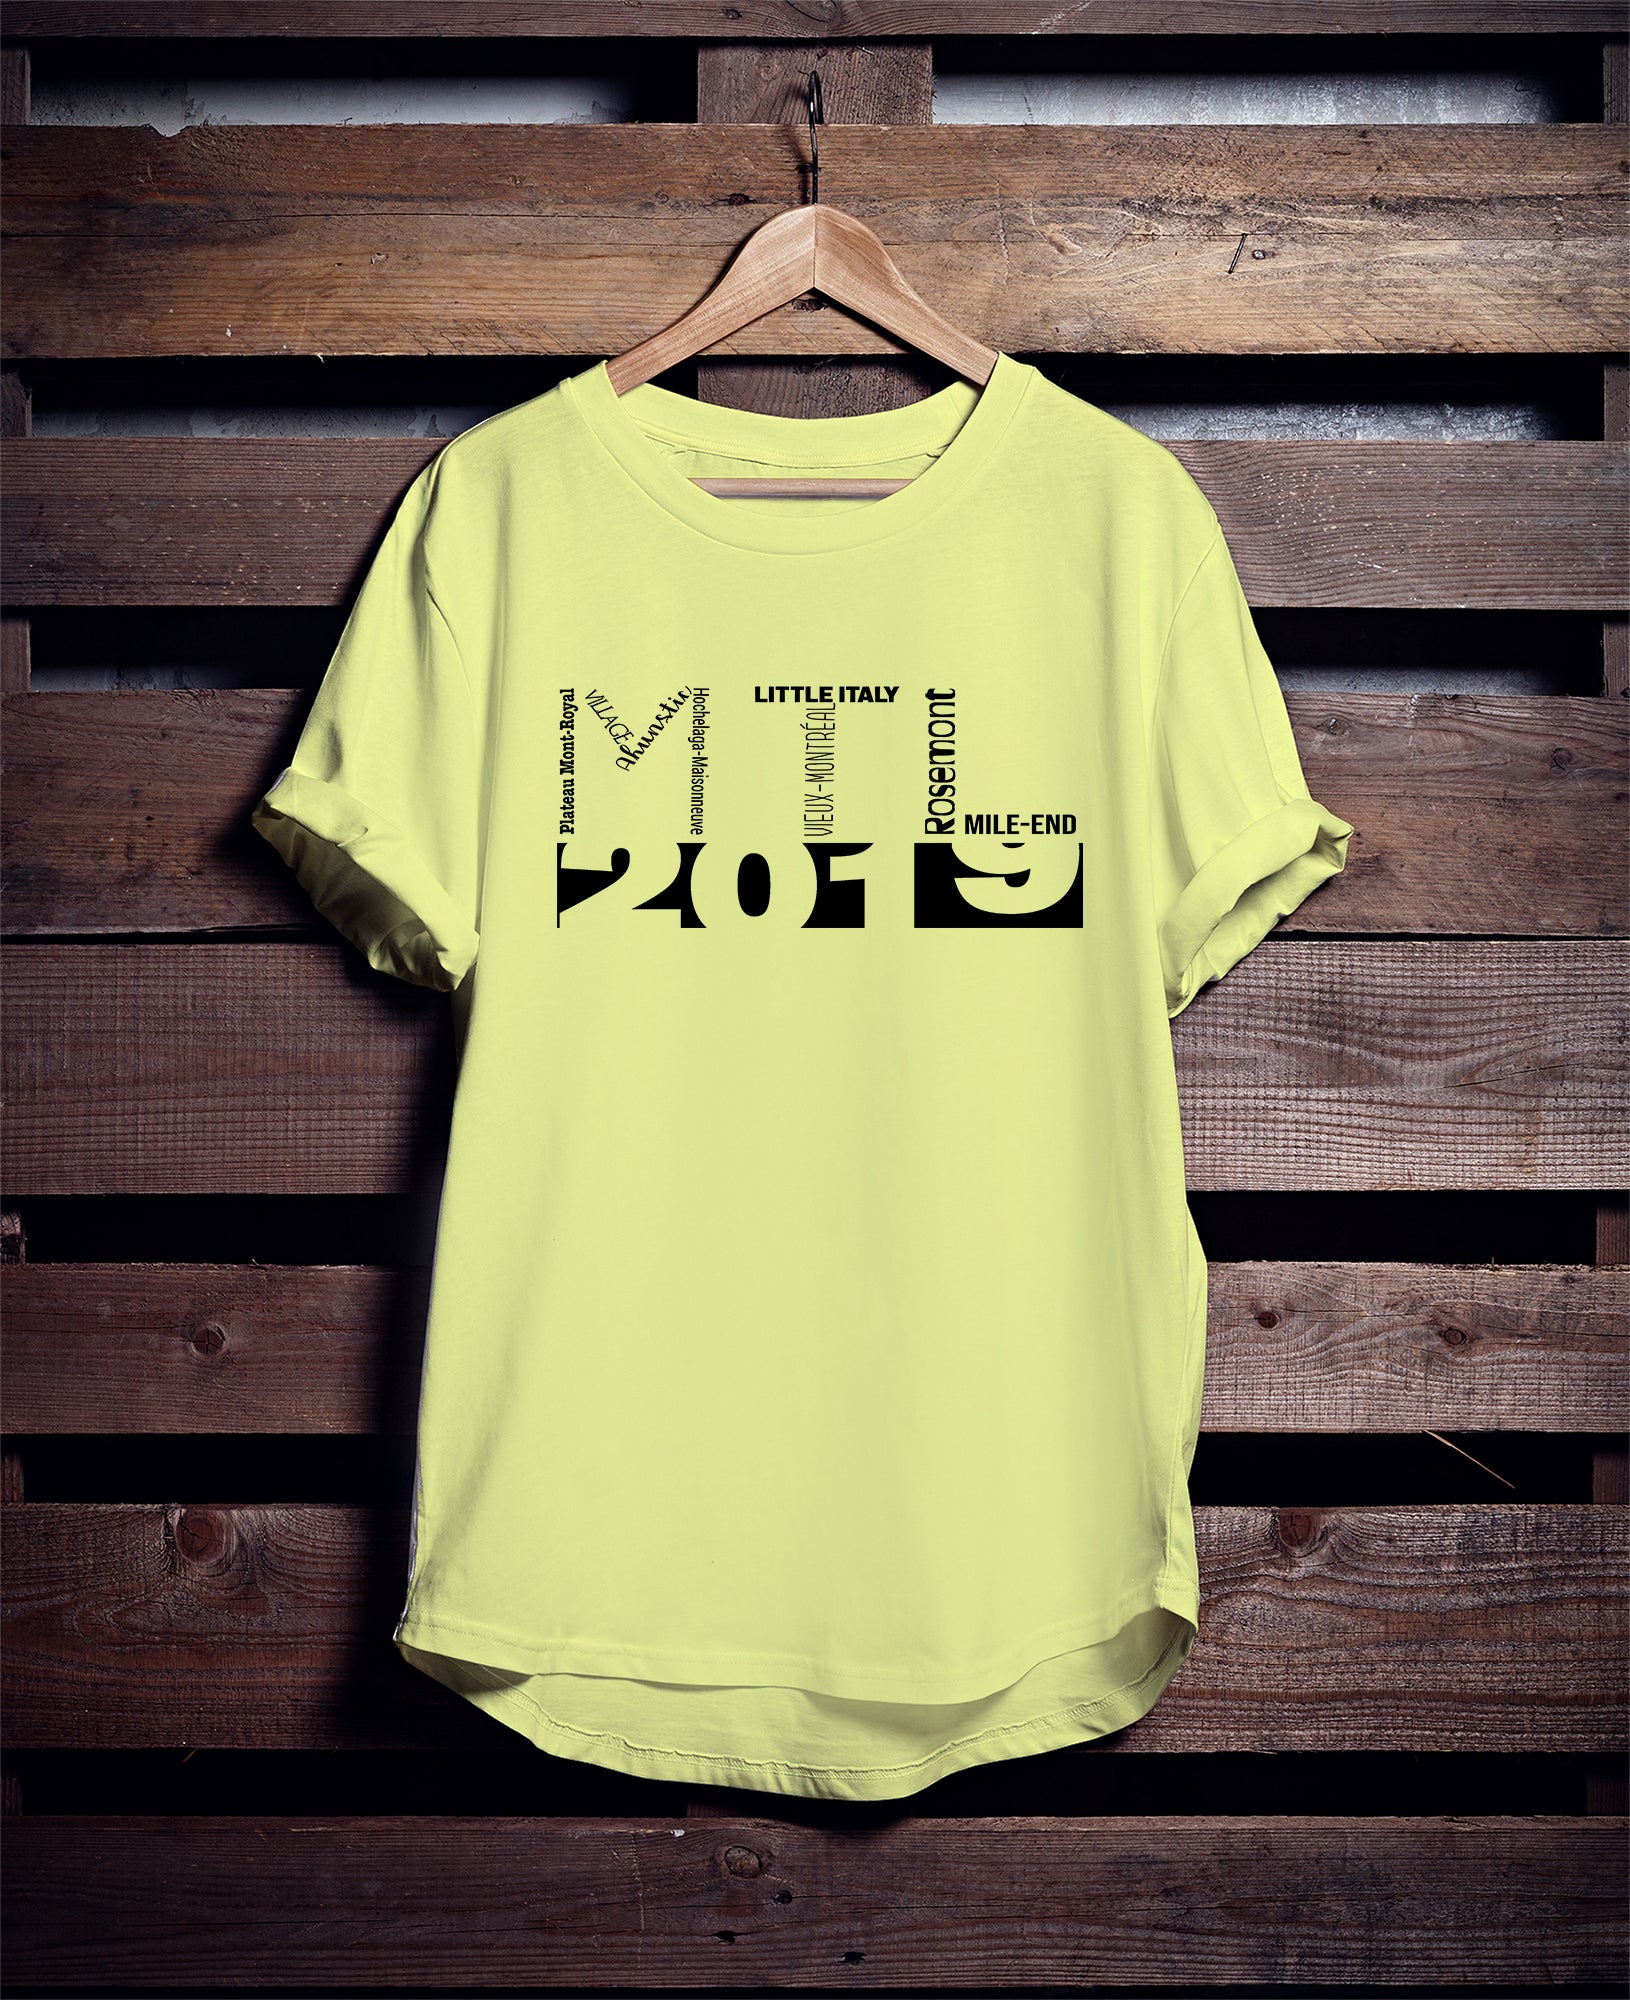 MONTREAL Puzzle 2019 T-SHIRT